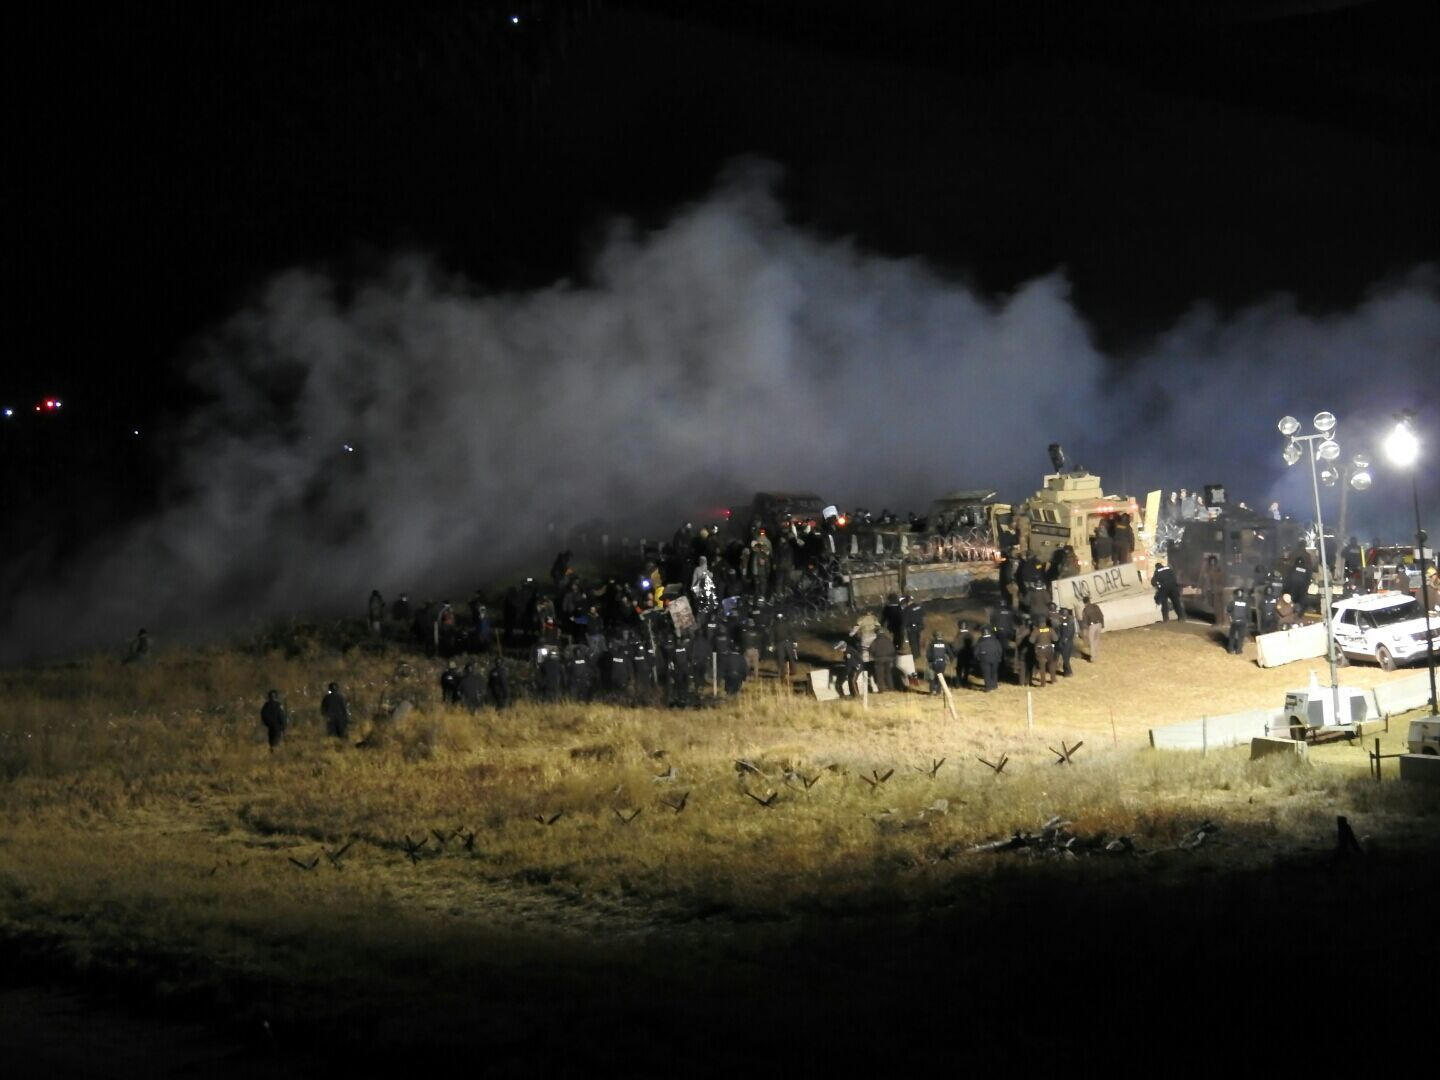 In this image provided by Morton County Sheriff's Department, law enforcement and protesters clash near the site of the Dakota Access pipeline on Nov. 20, 2016, in Cannon Ball, N.D.